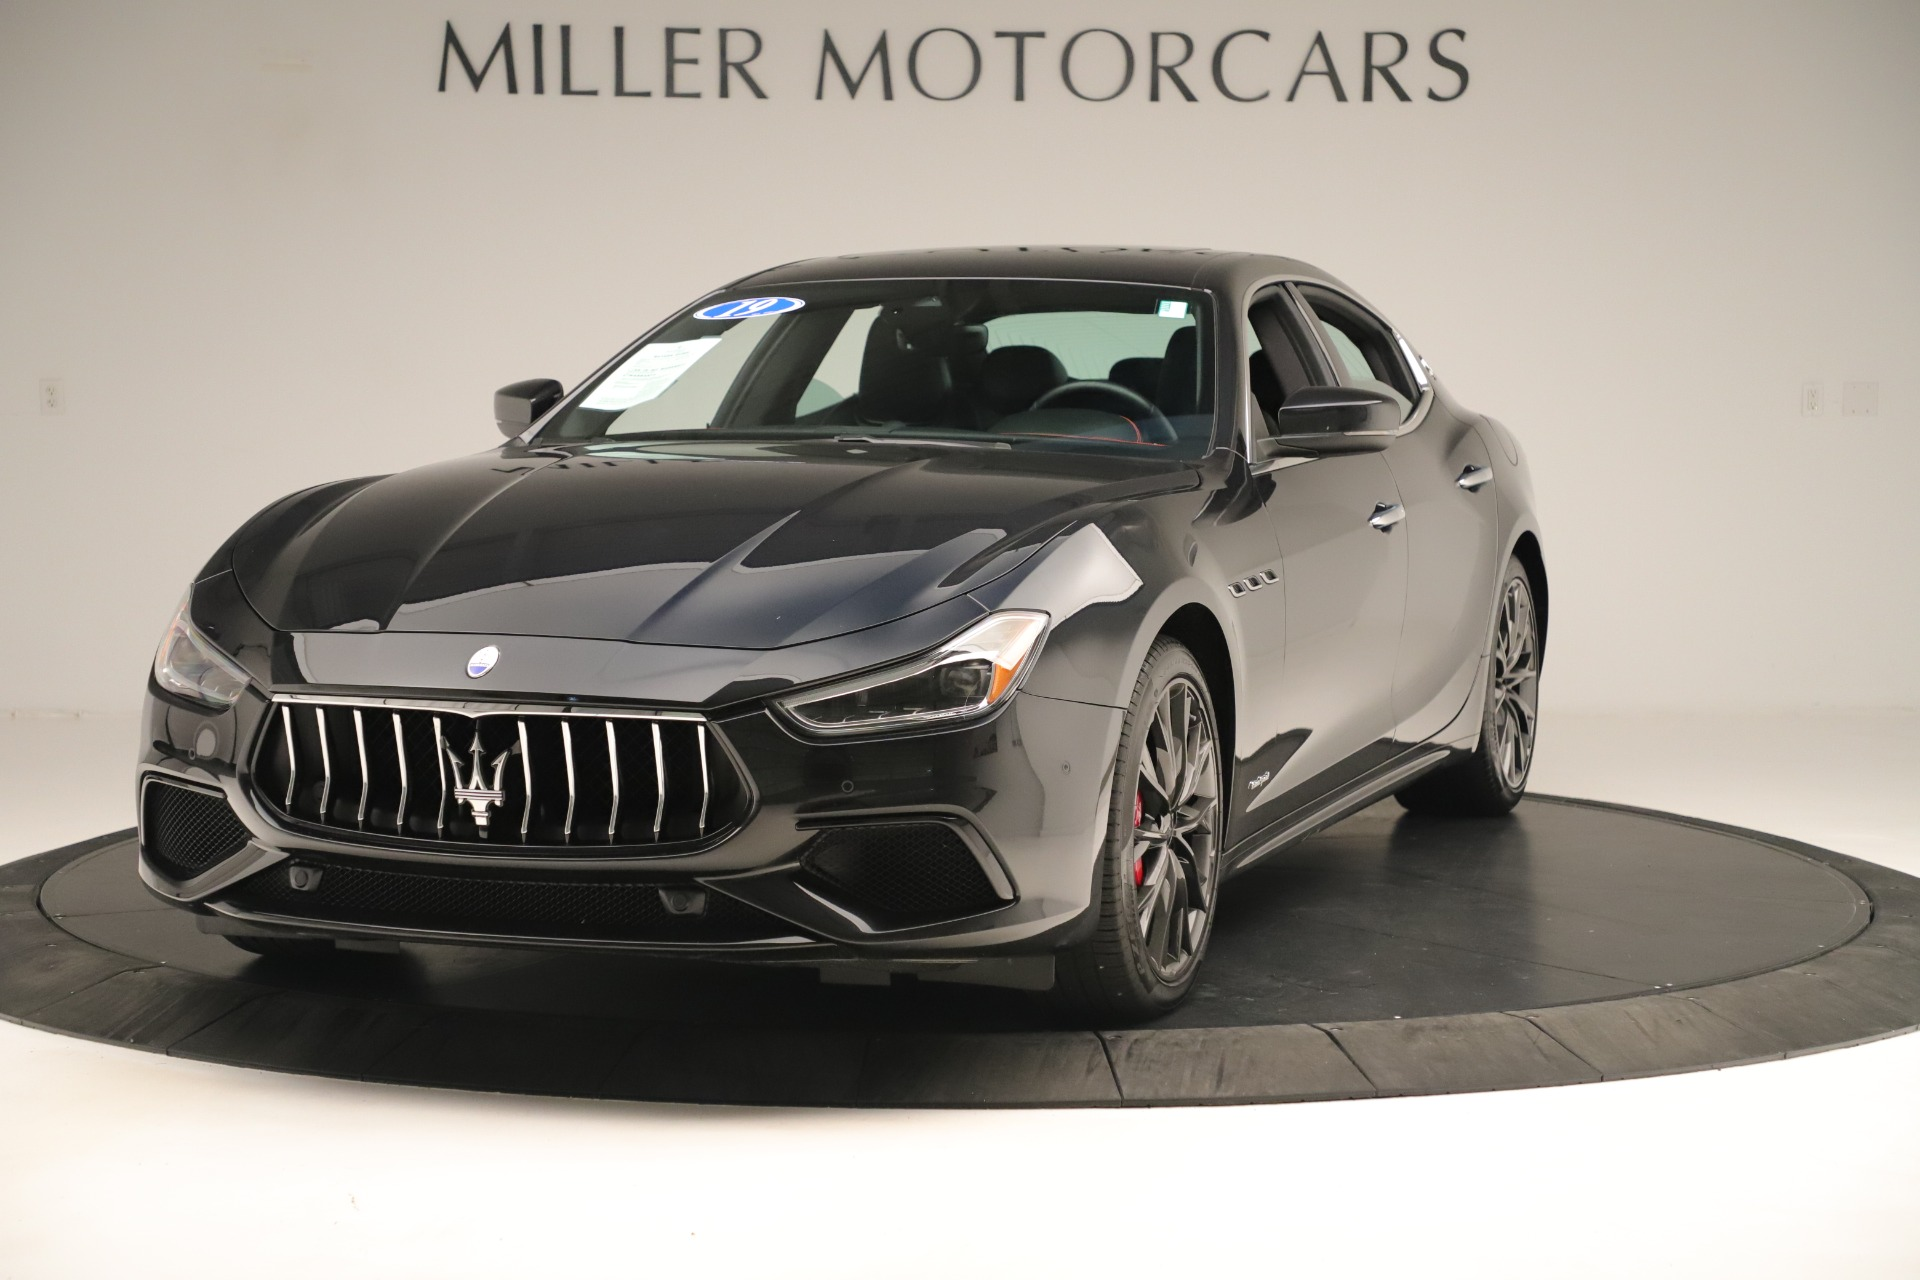 New 2019 Maserati Ghibli S Q4 GranSport for sale Sold at Alfa Romeo of Westport in Westport CT 06880 1